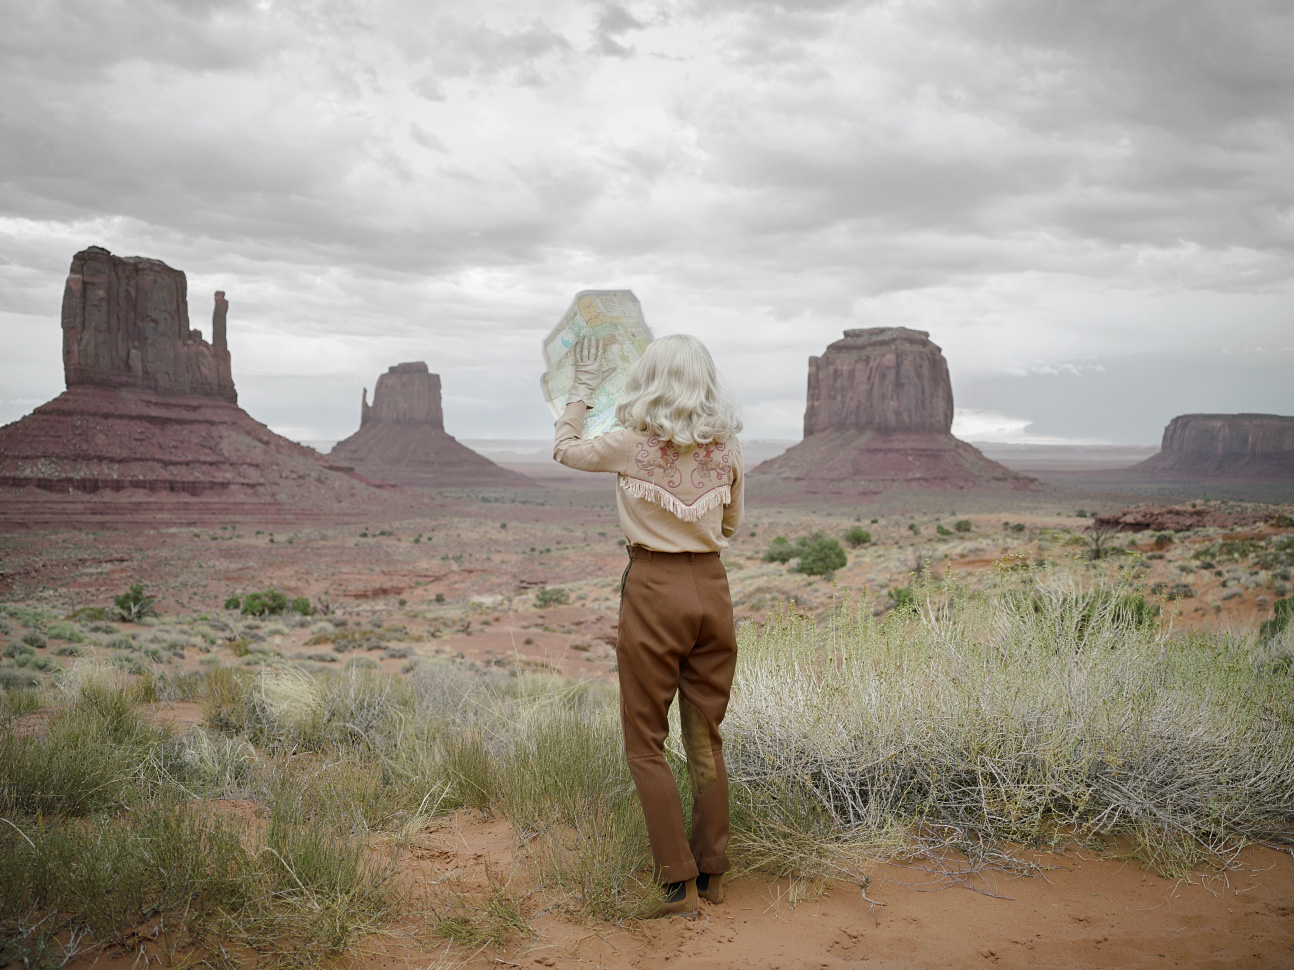 The Fictional Road Trip © Anja Niemi -The Little Black Gallery